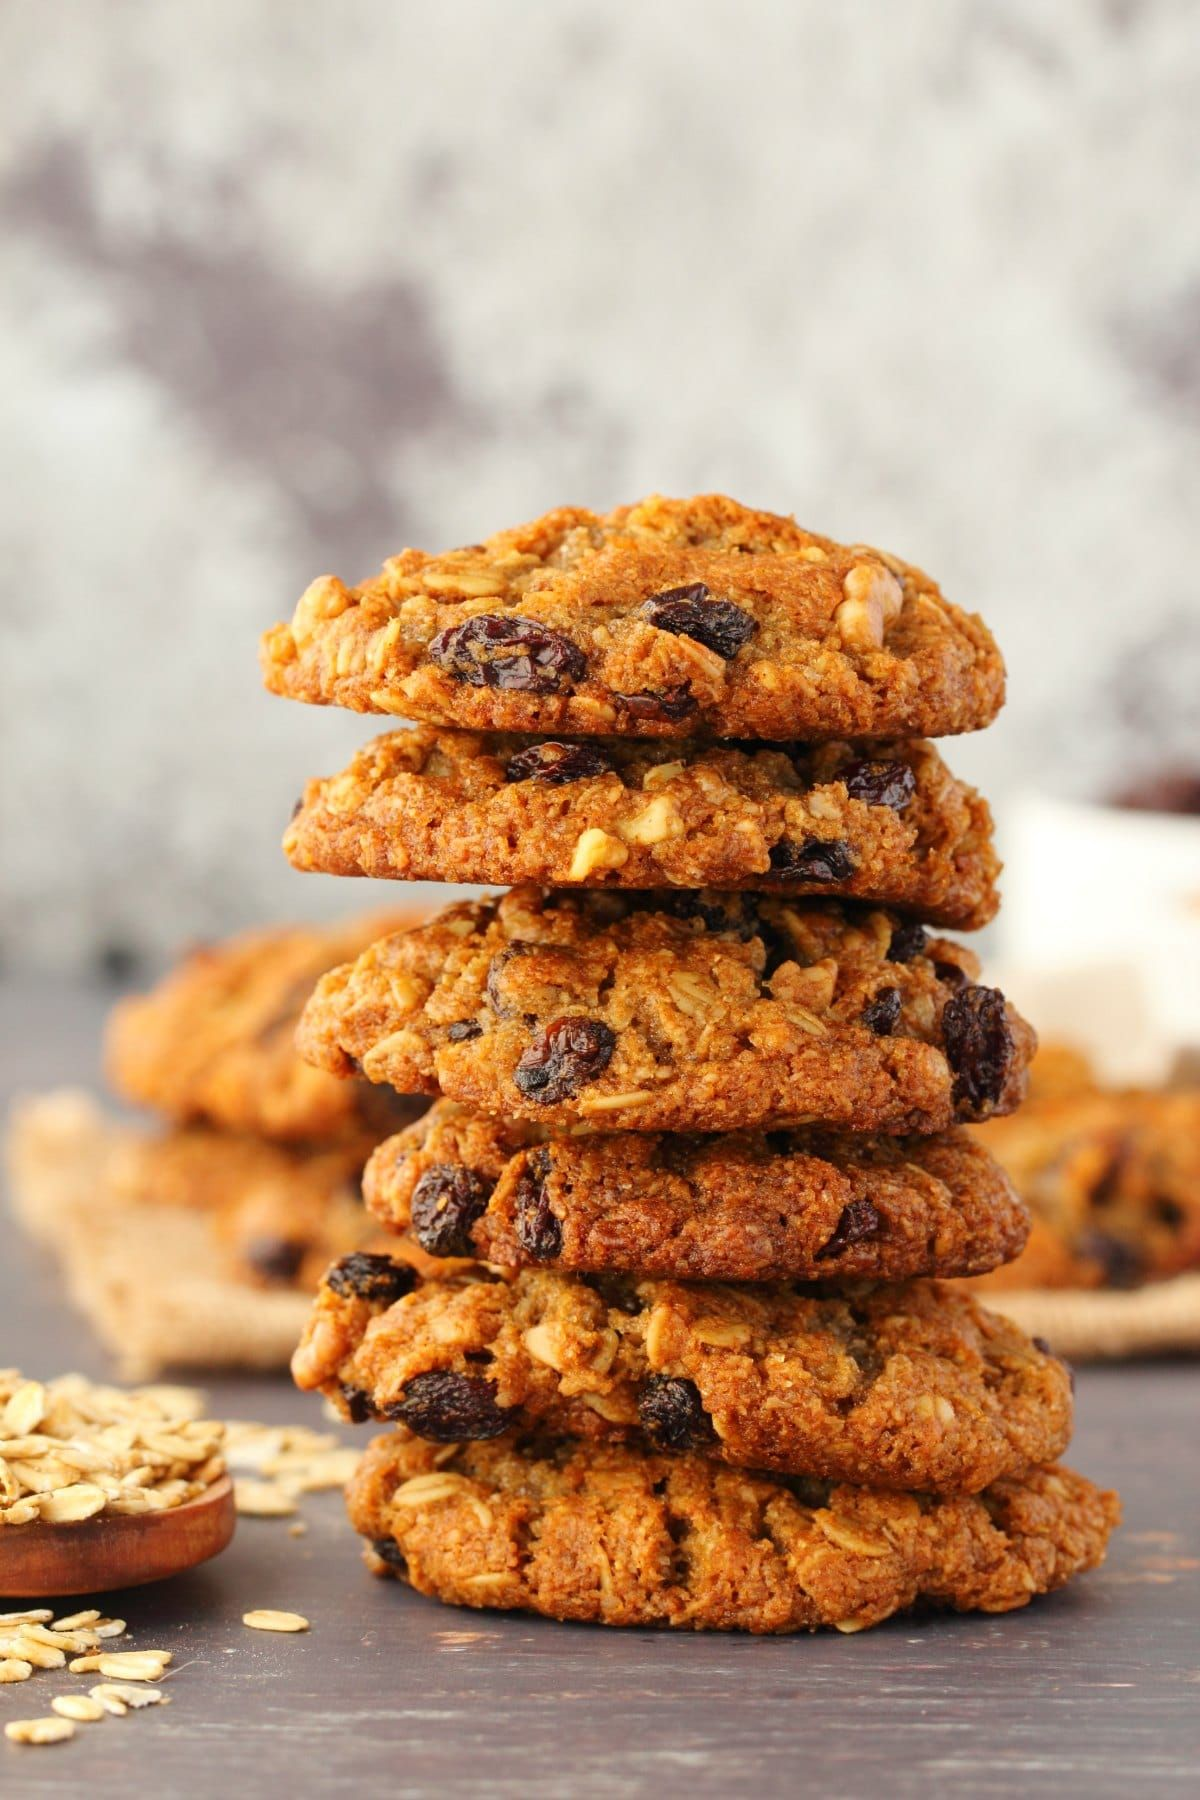 Vegan Oatmeal Raisin Cookies That Are Crisp On The Outside Soft And Chewy On The Inside Su Vegan Oatmeal Raisin Cookies Oatmeal Raisin Cookies Oatmeal Raisin